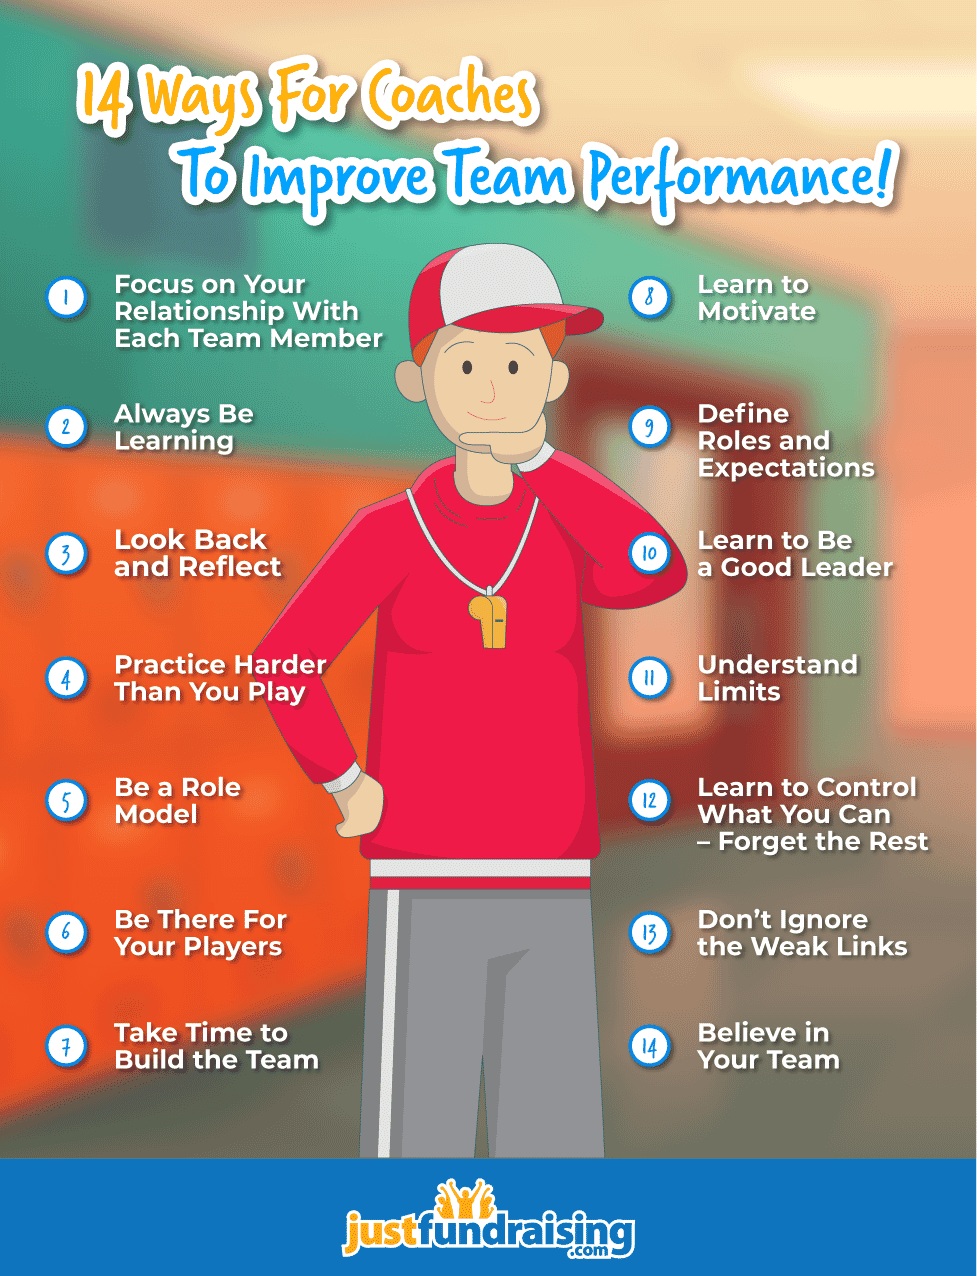 14 ways for coaches to improve team performance